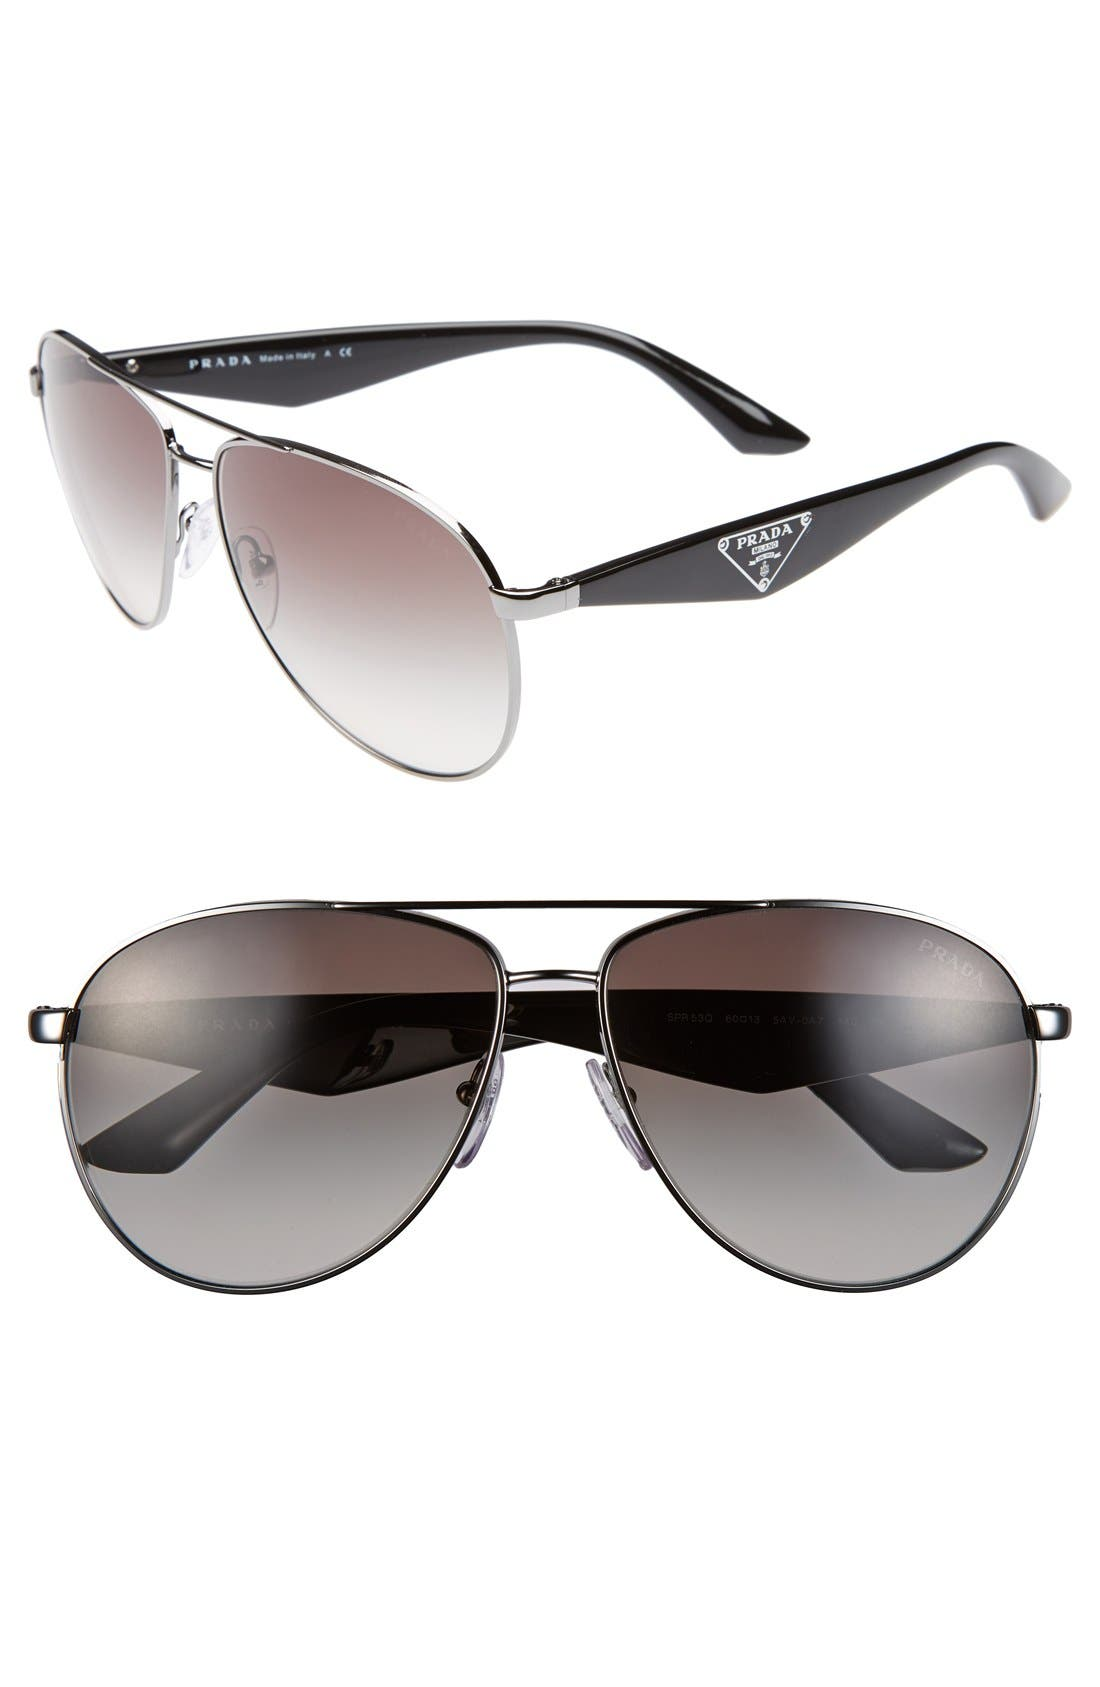 60mm Aviator Sunglasses,                         Main,                         color, Gunmetal